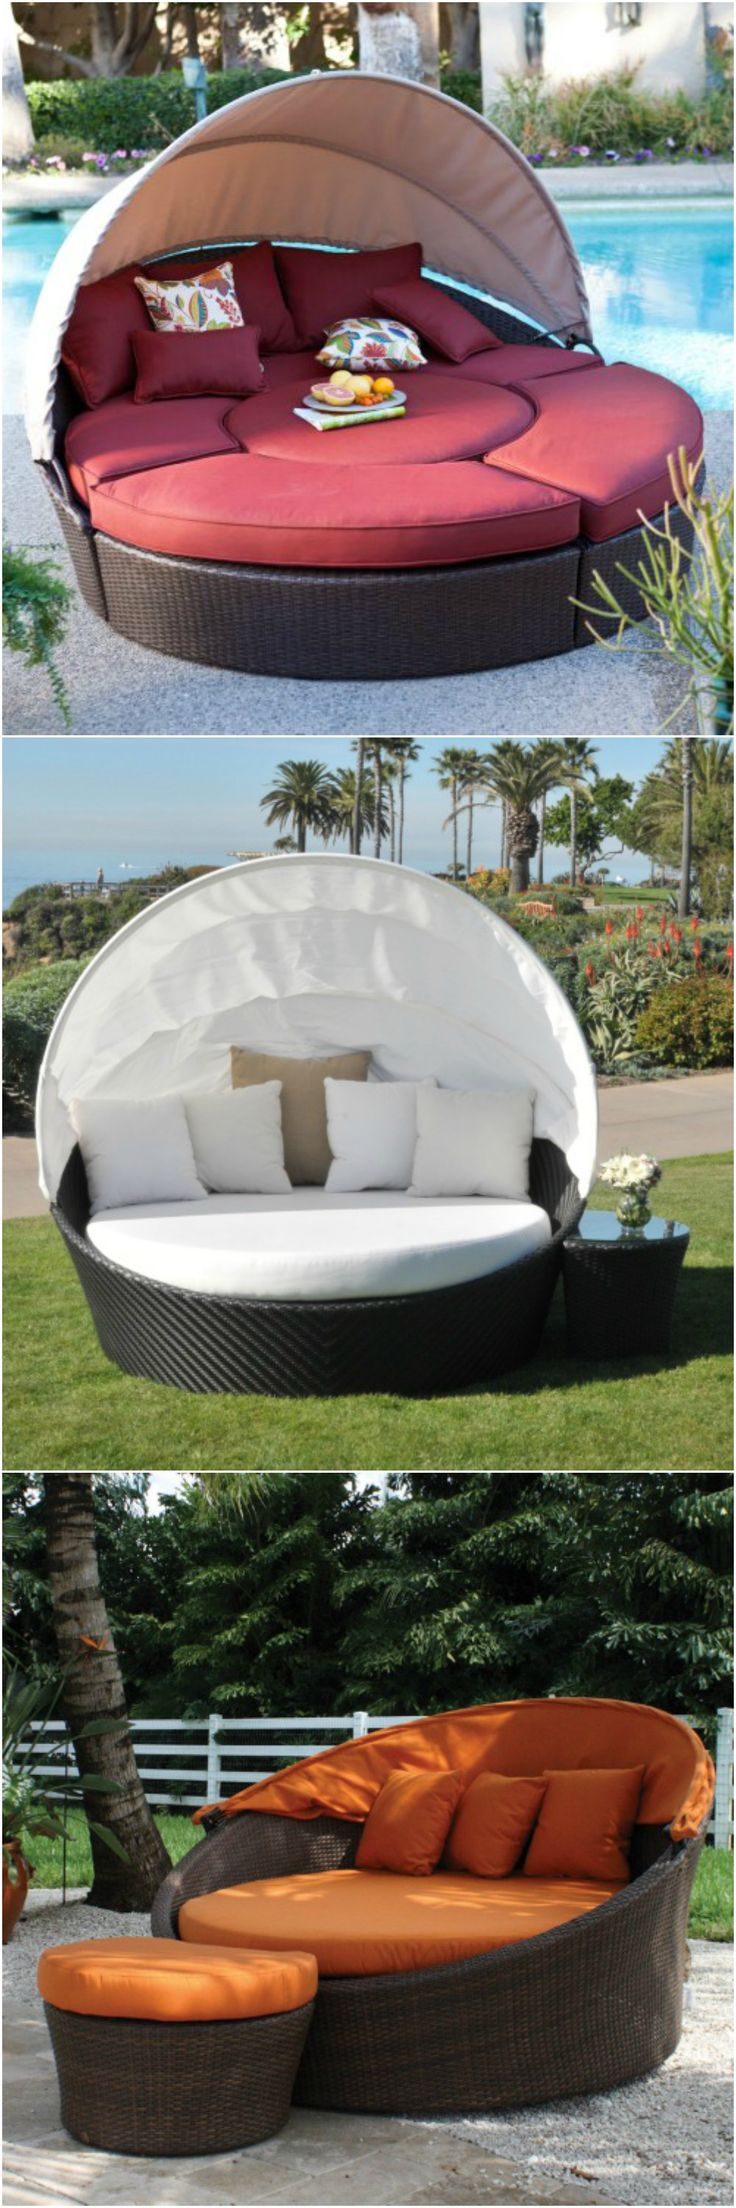 Outdoor daybeds.